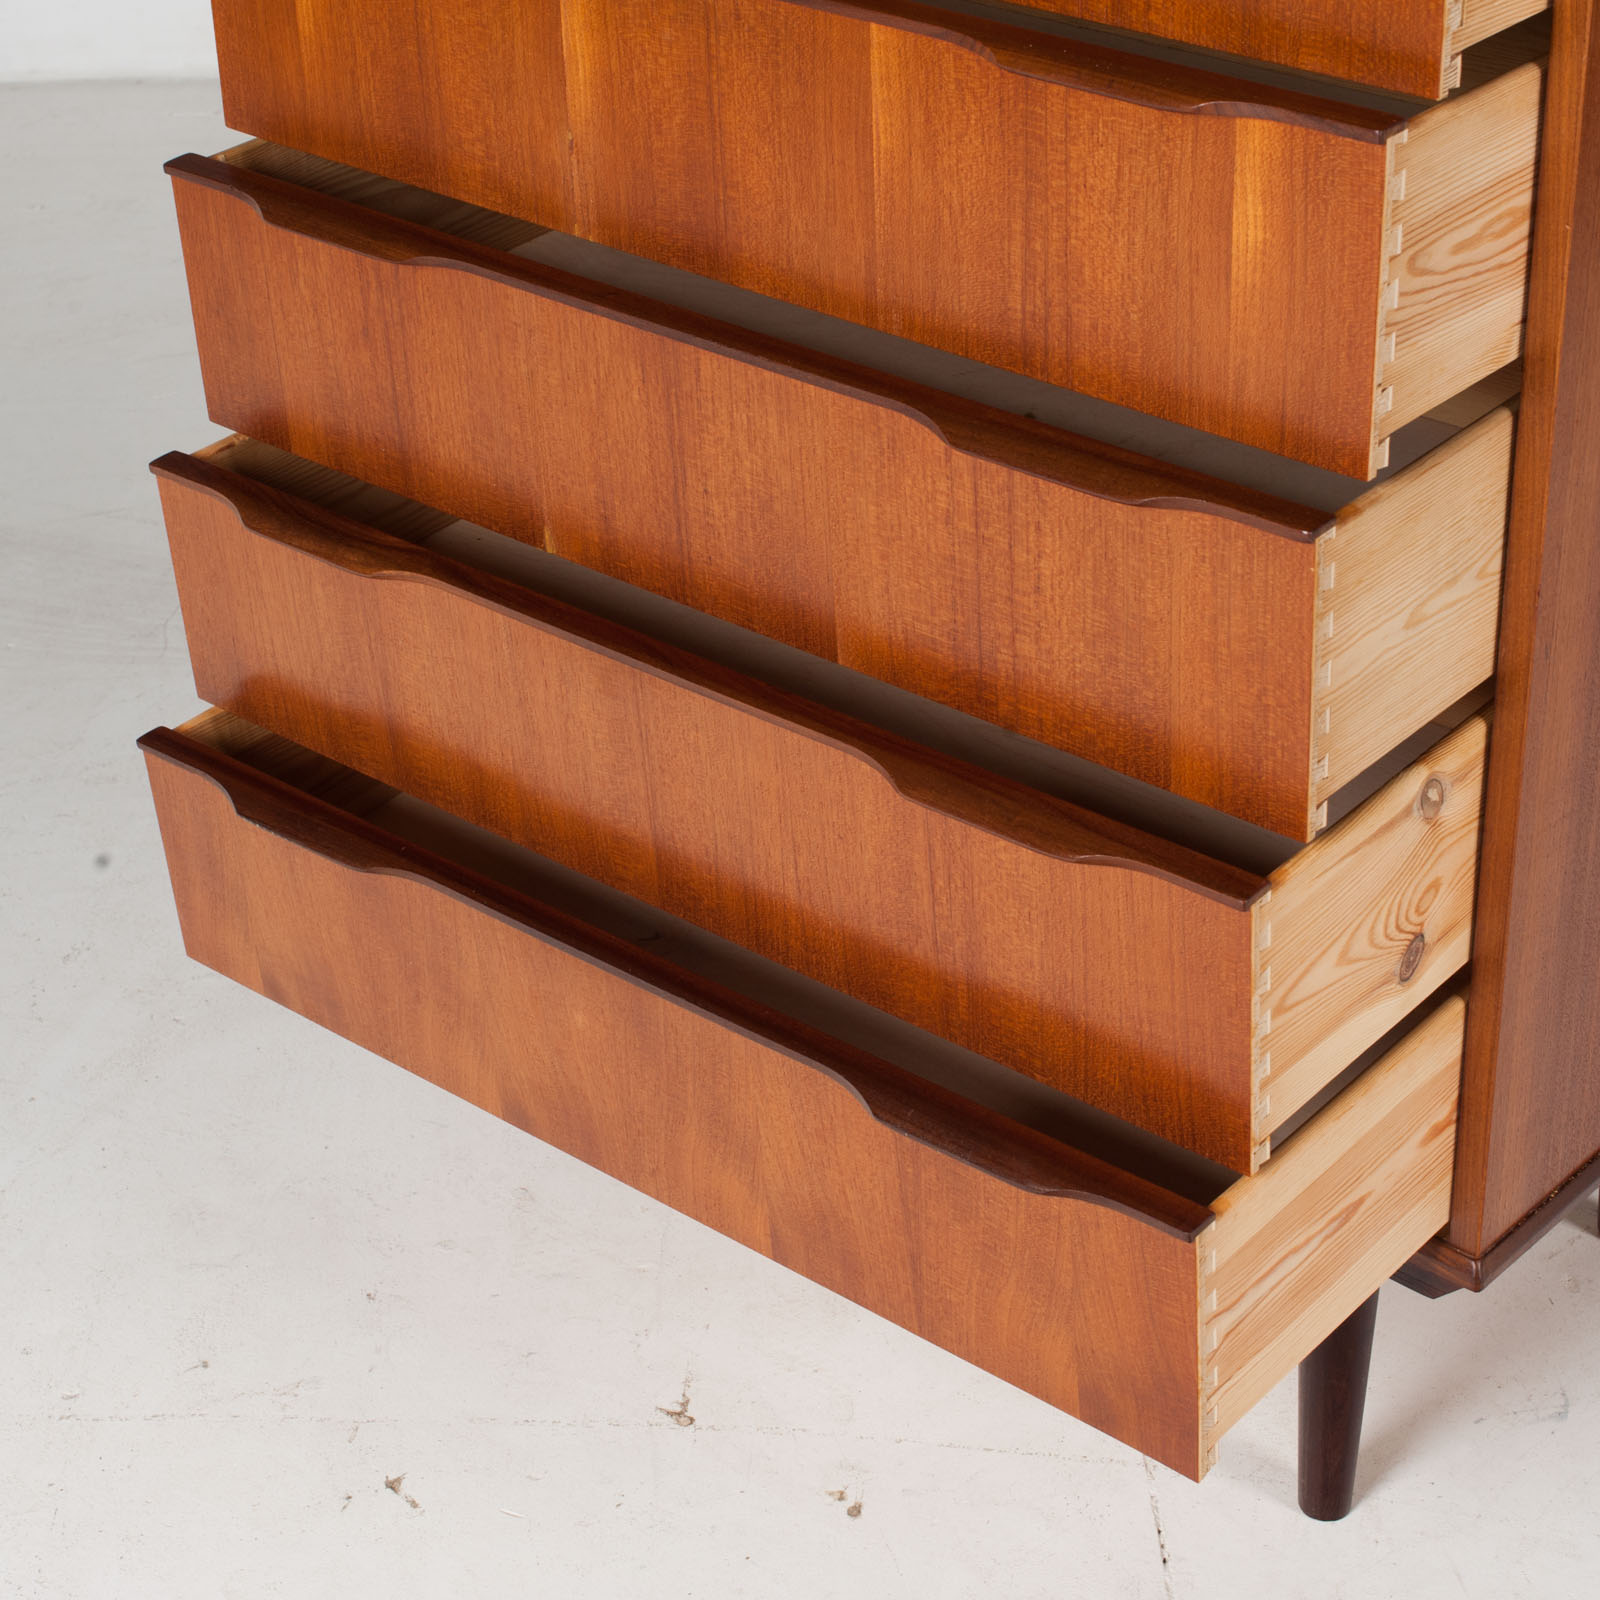 Deep Chest In Teak With Six Drawers And Lipped Handles, 1960s, Denmark6